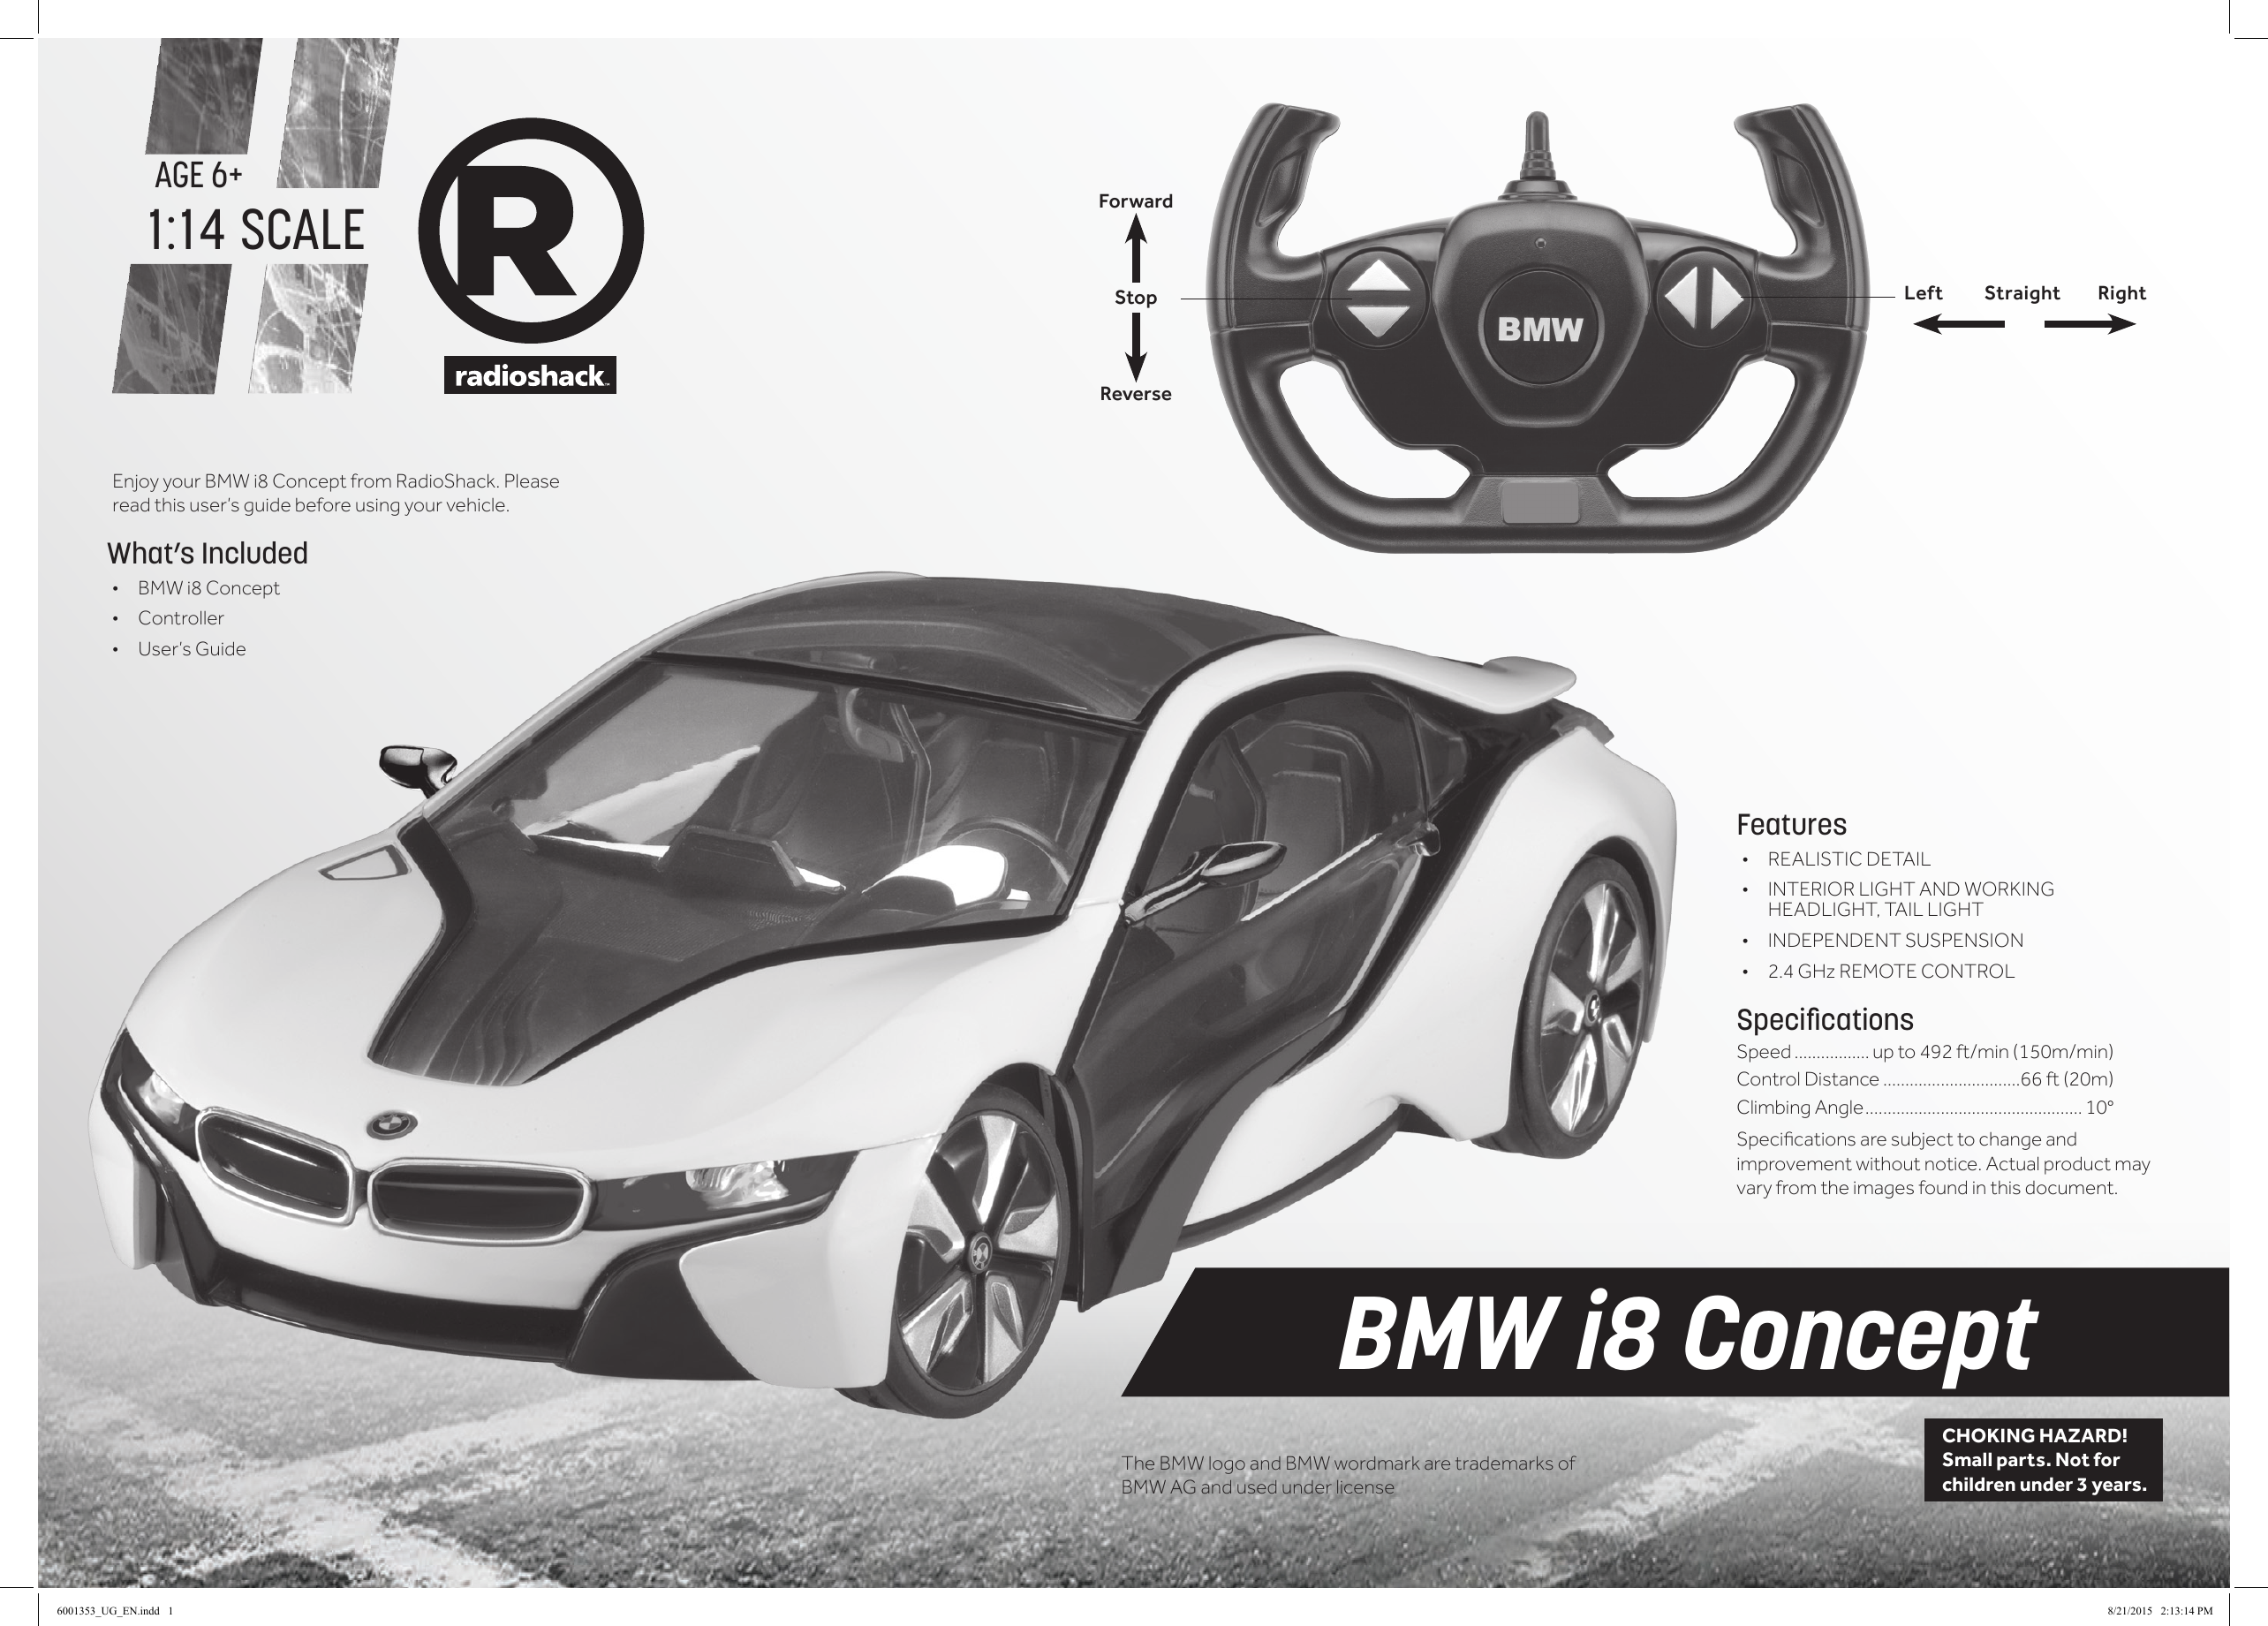 Rastar Group Xh150720tx 1 14 2 4ghz Bmw I8 Concept User Manual